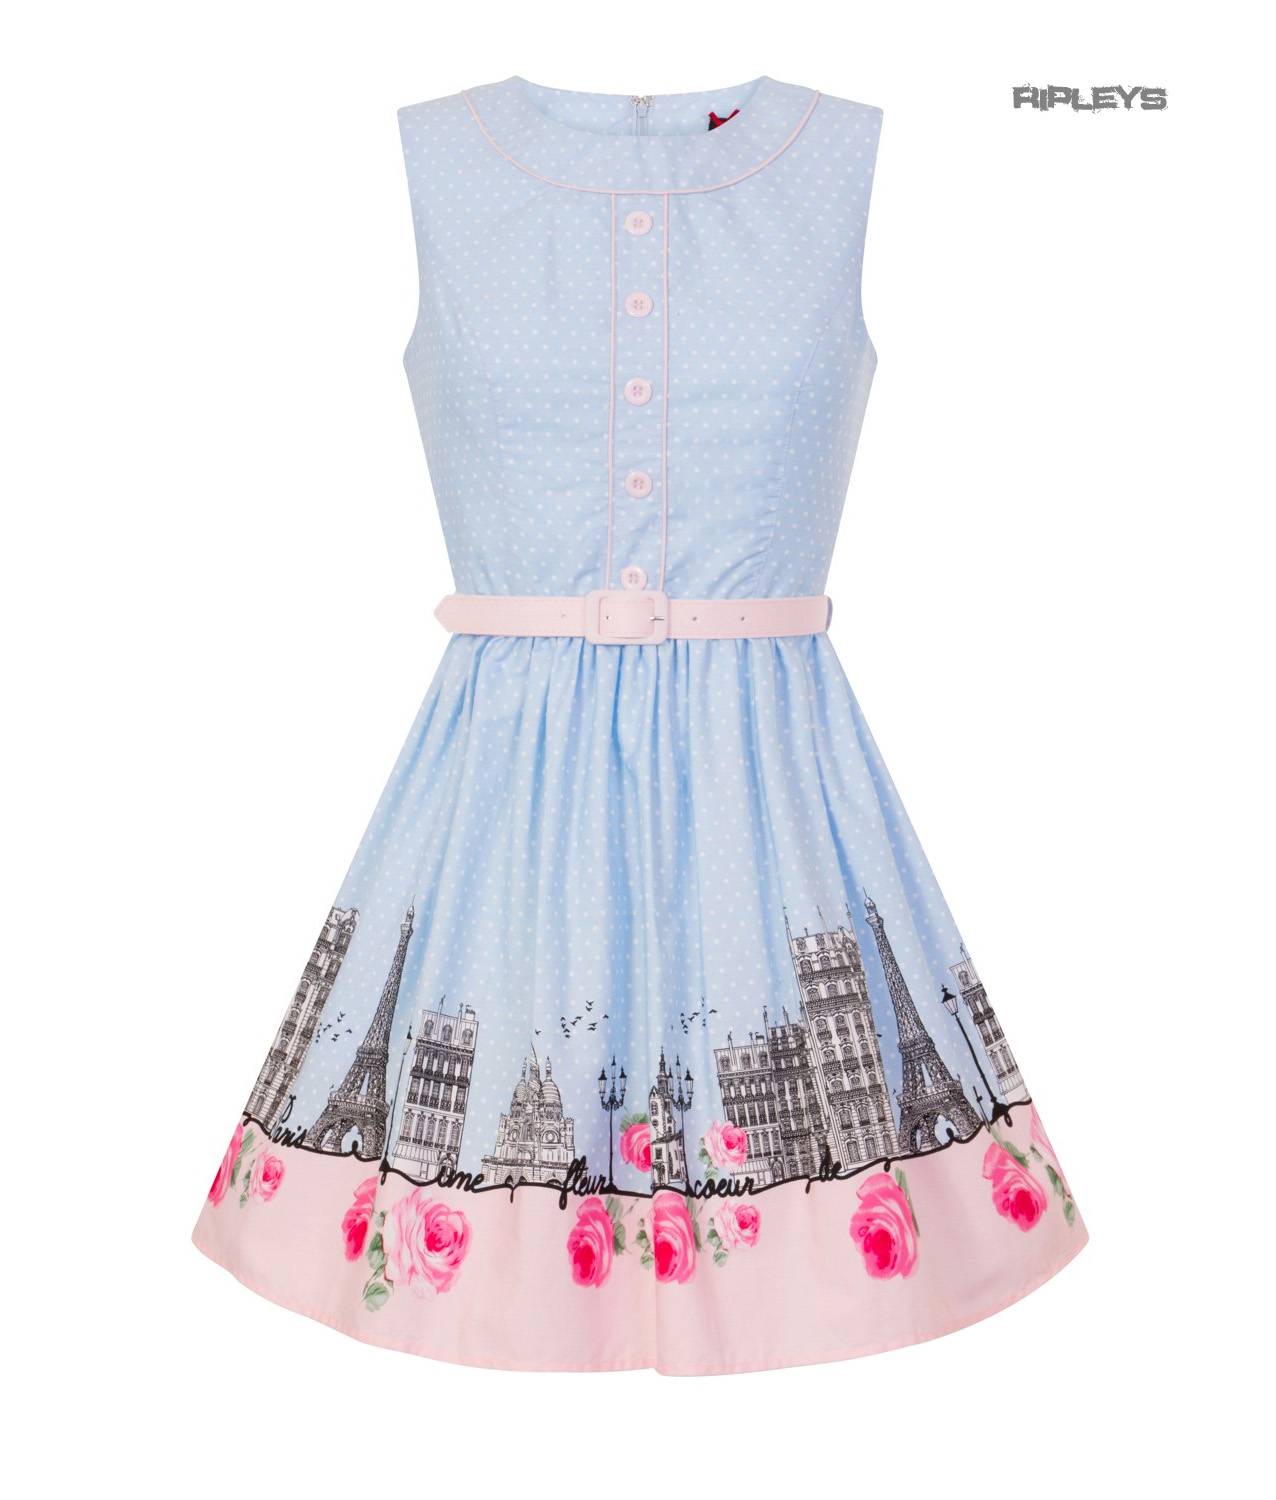 Hell-Bunny-50s-Vintage-Blue-Polka-Dot-PANAME-Mini-Dress-Paris-All-Sizes thumbnail 22